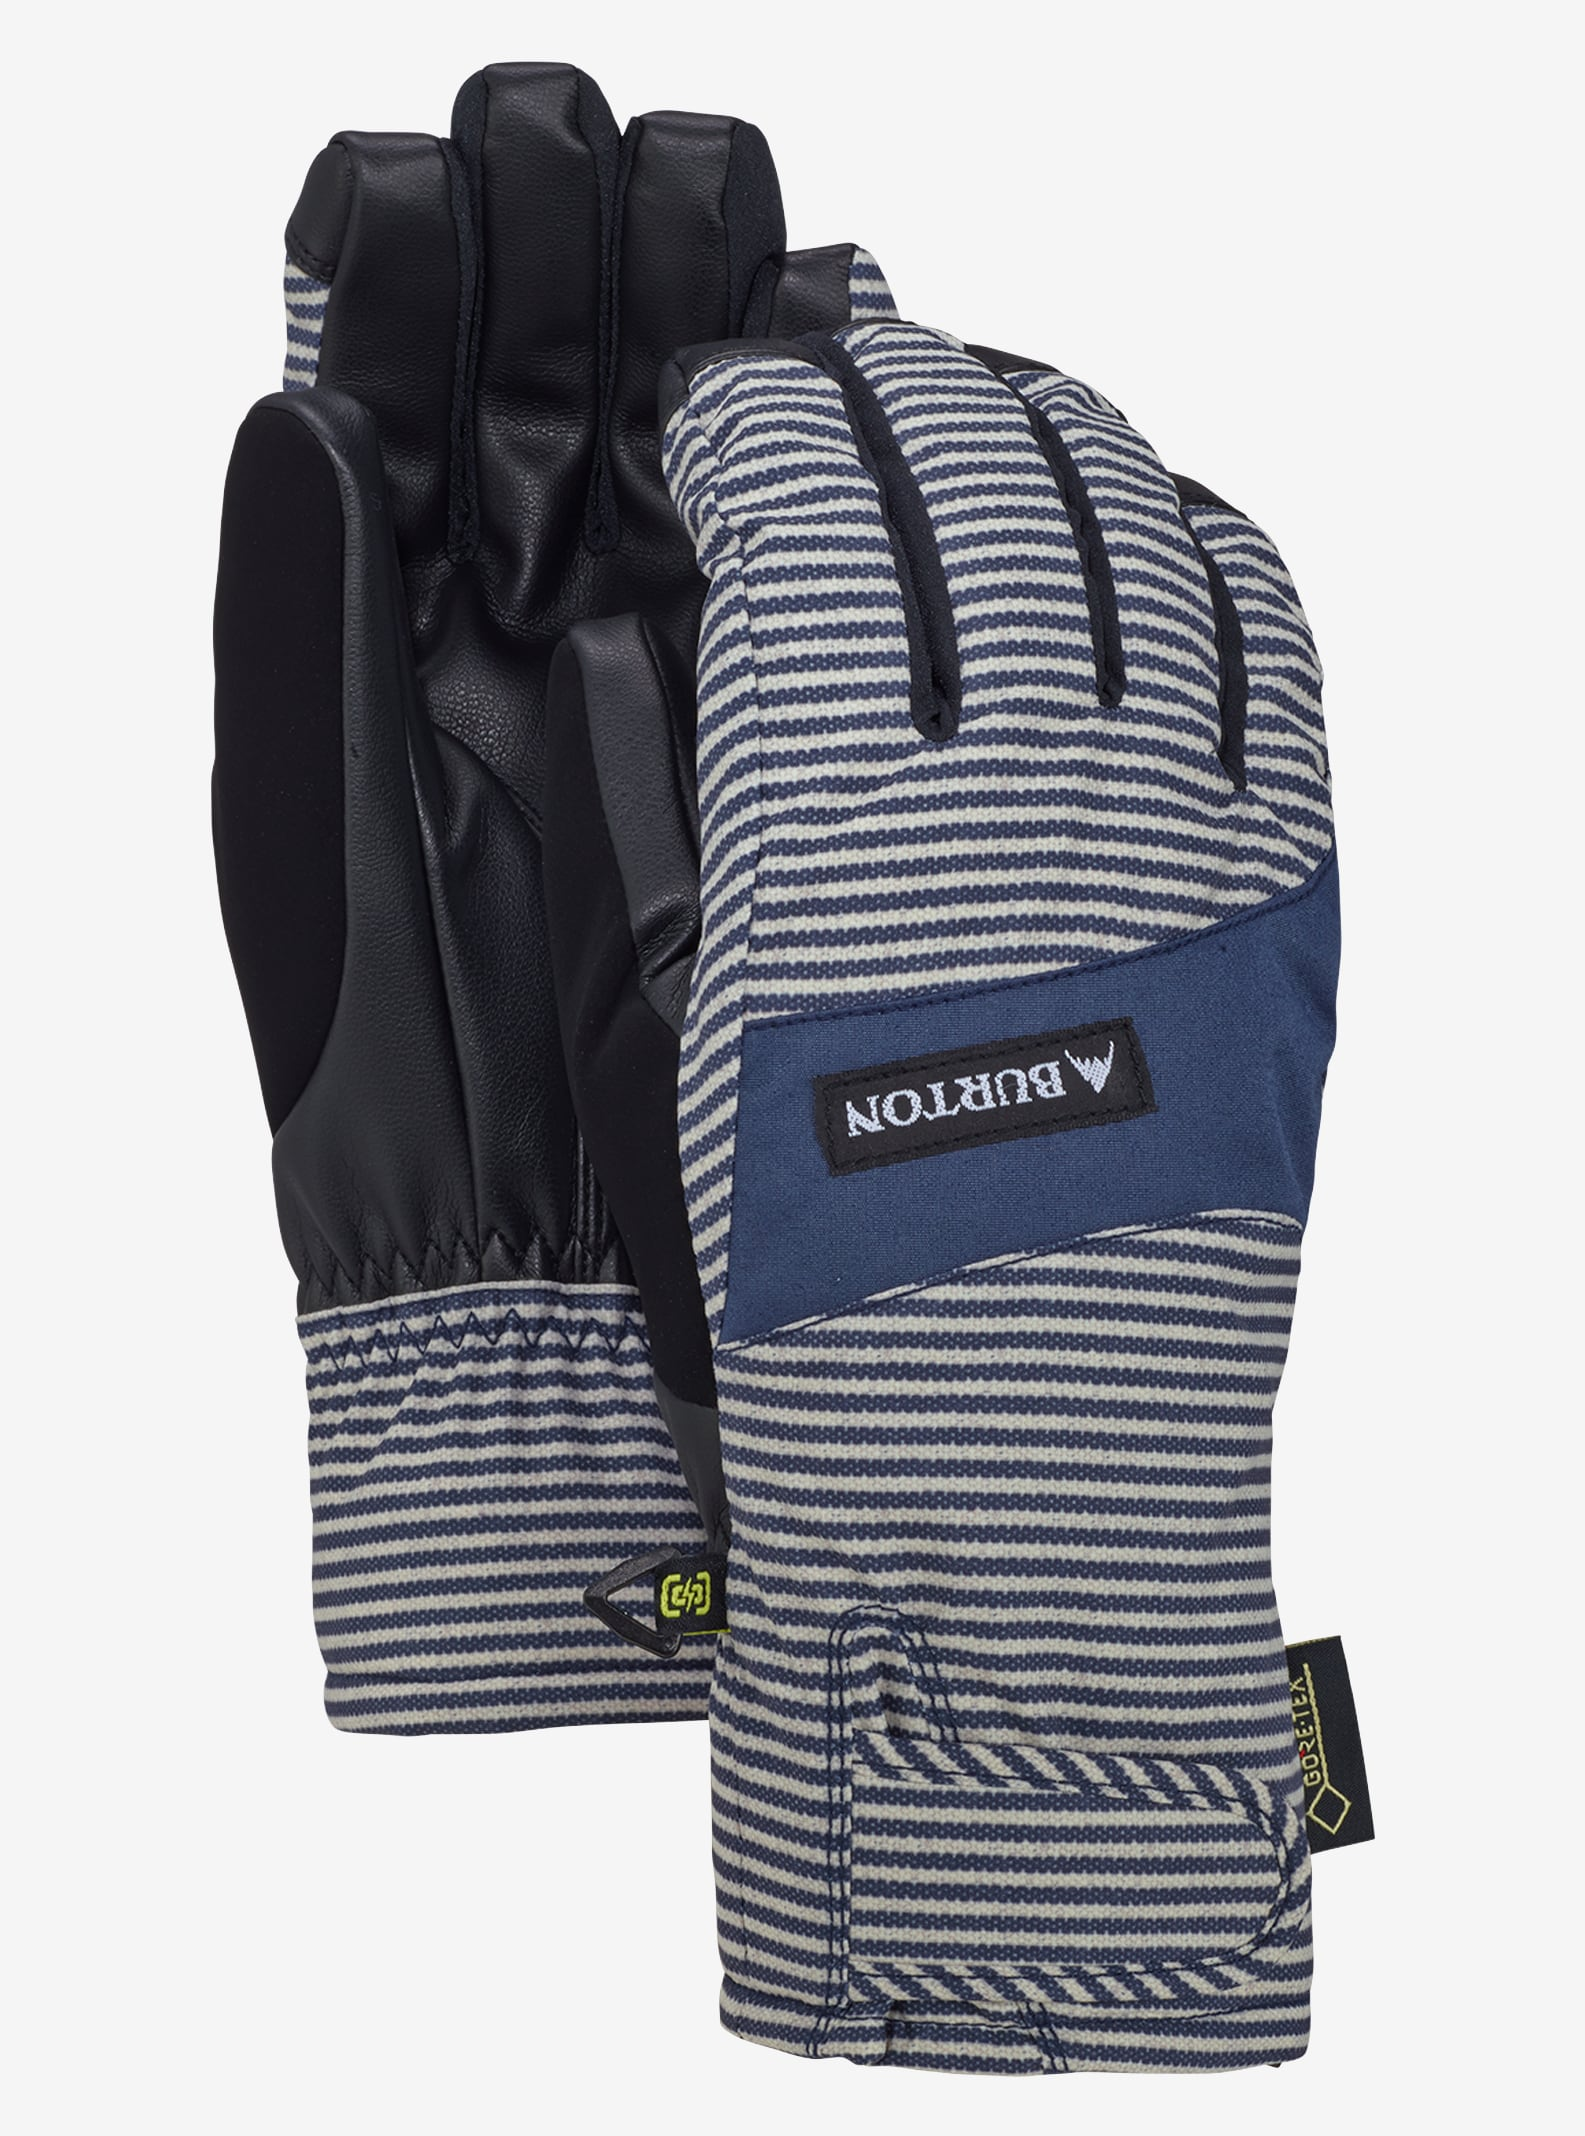 Women's Burton Reverb GORE‑TEX® Glove shown in Choo Choo / Mood Indigo